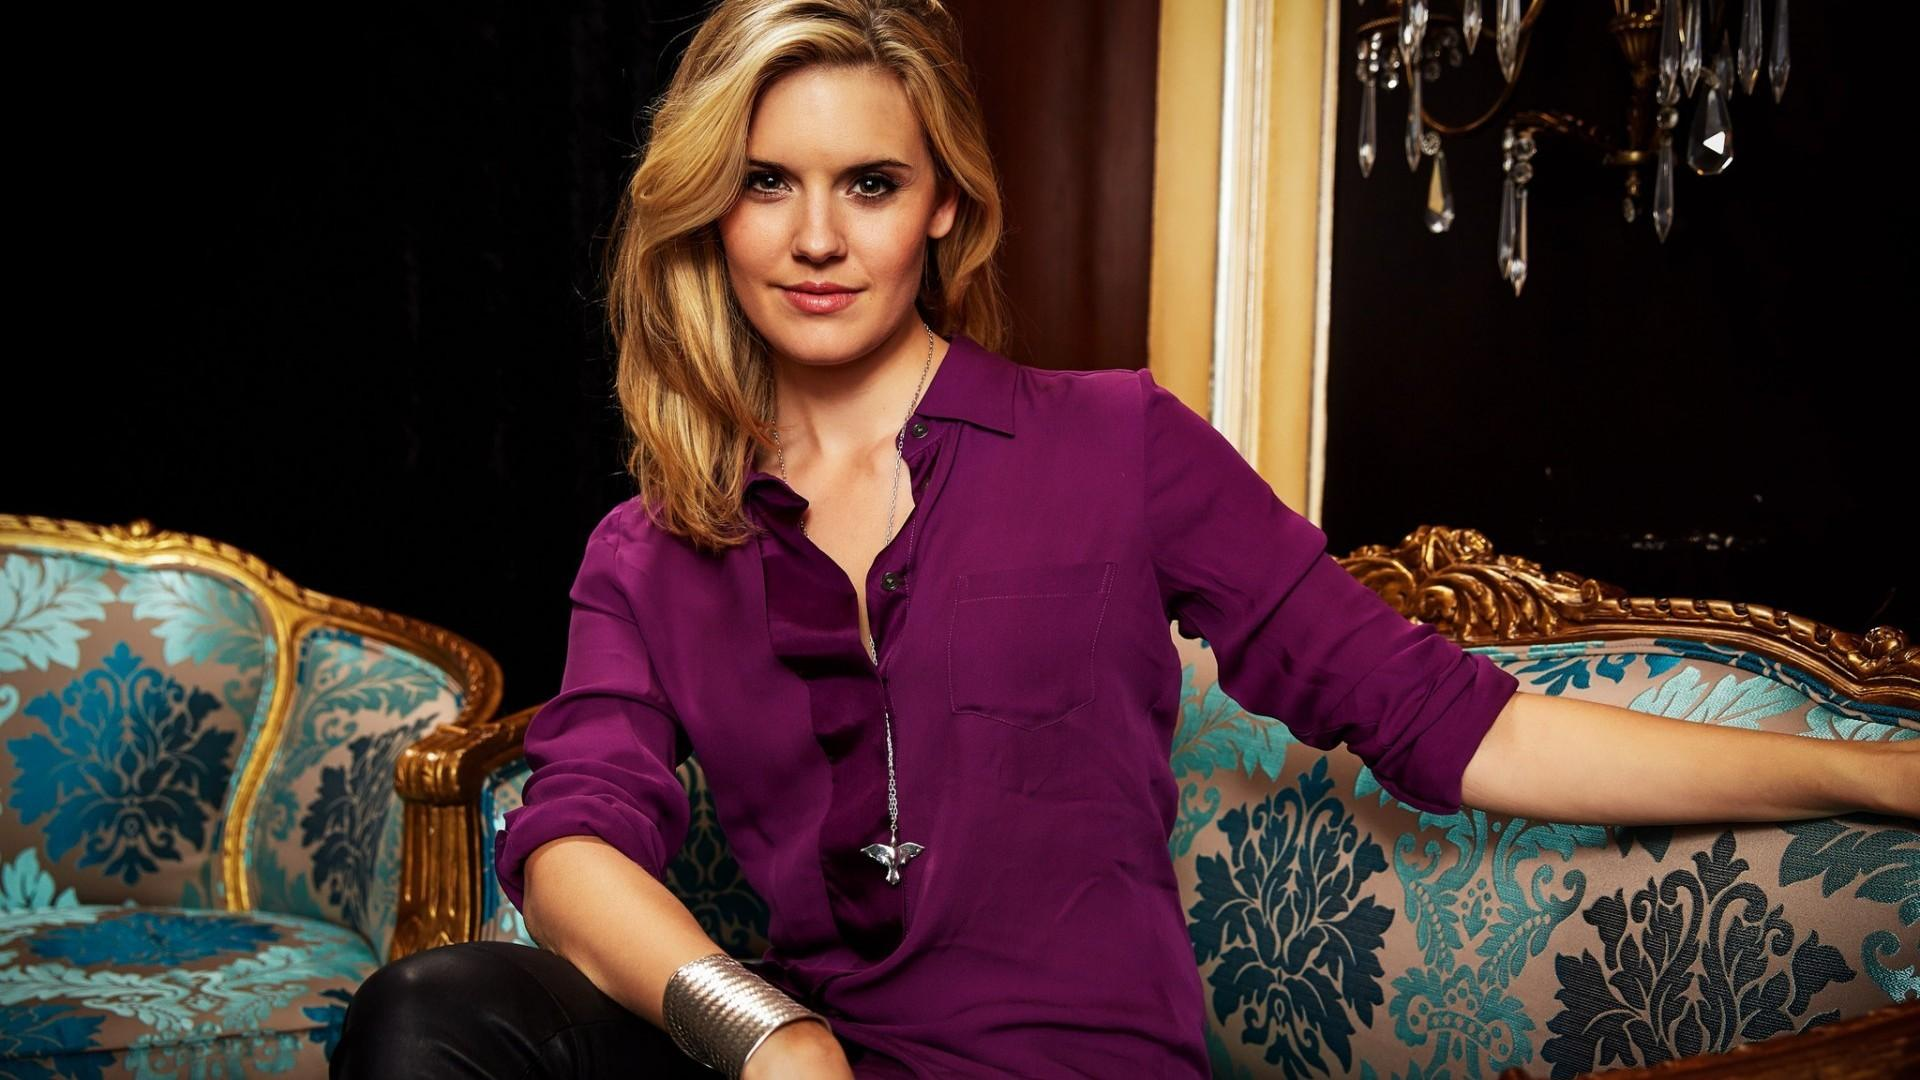 1920x1080 - Maggie Grace Wallpapers 15